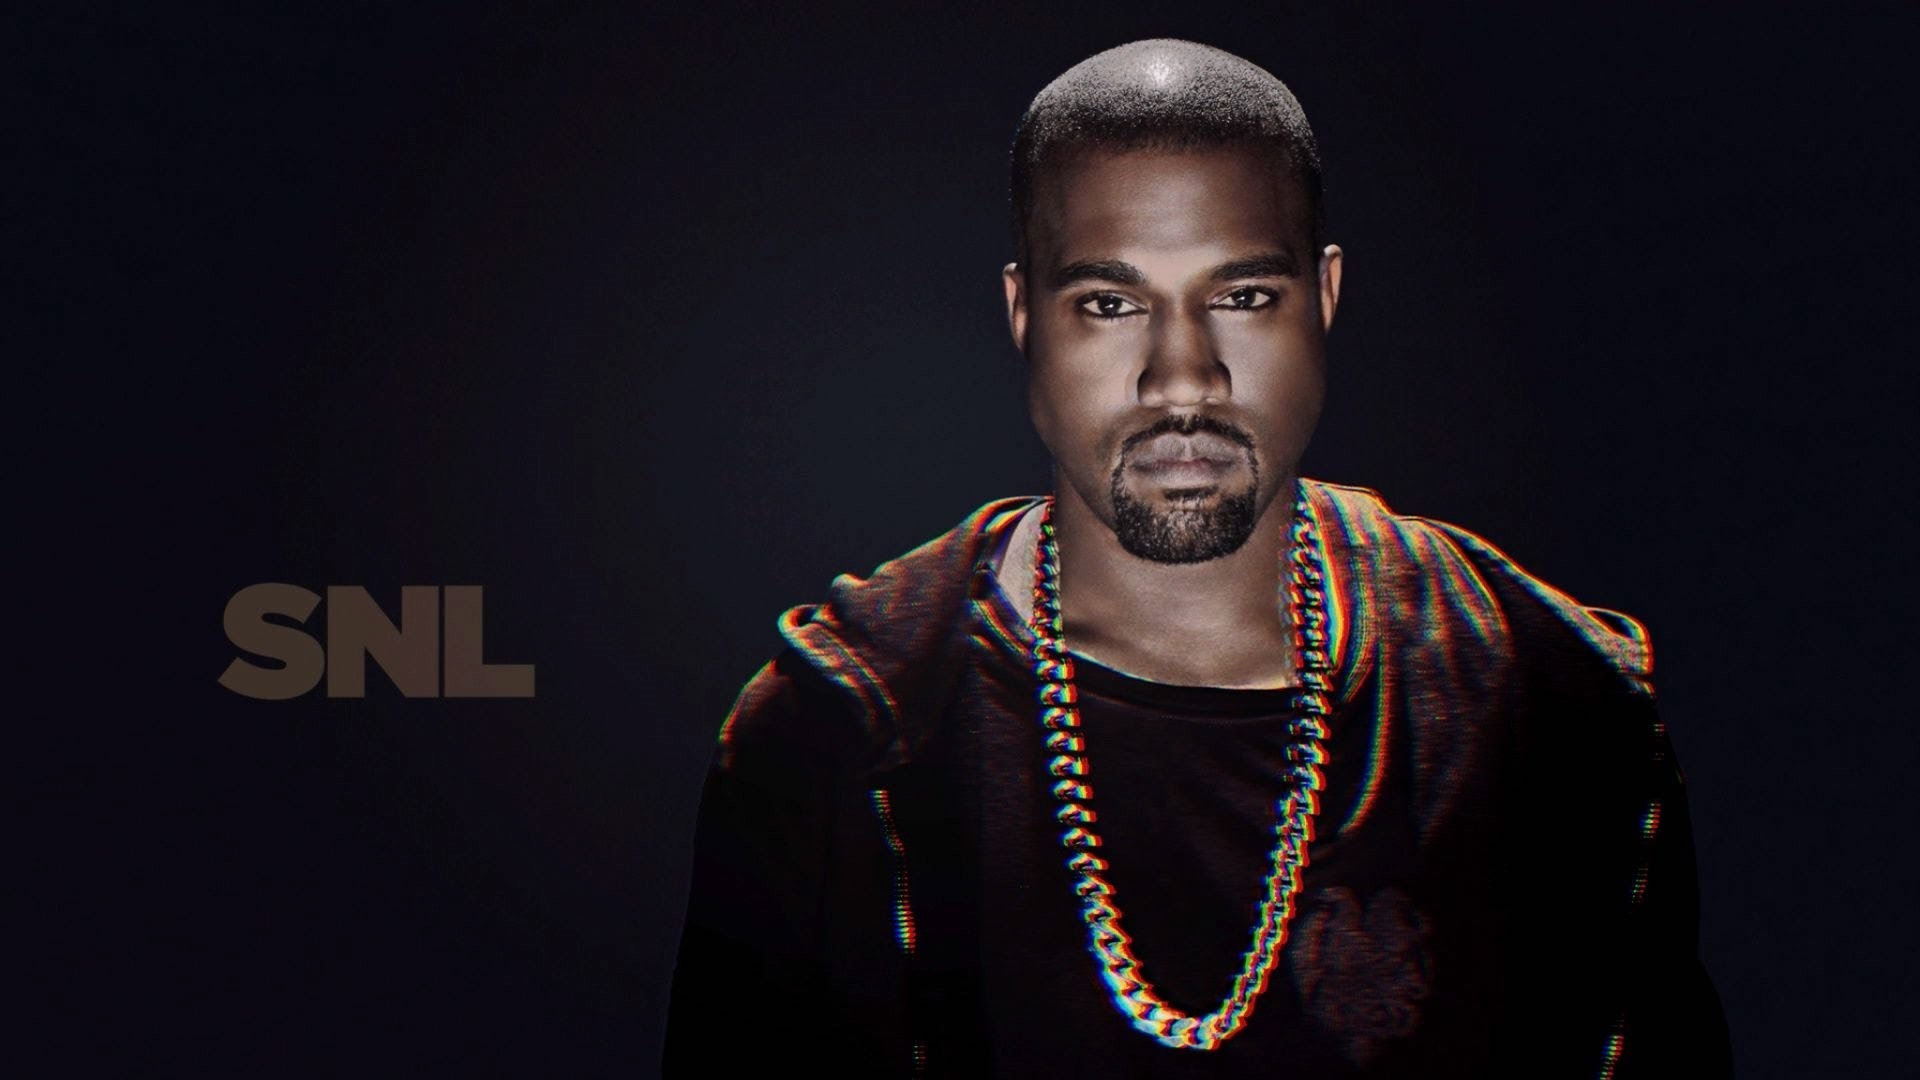 Wallpapers Of The Day: Kanye West | Kanye West Wallpaper